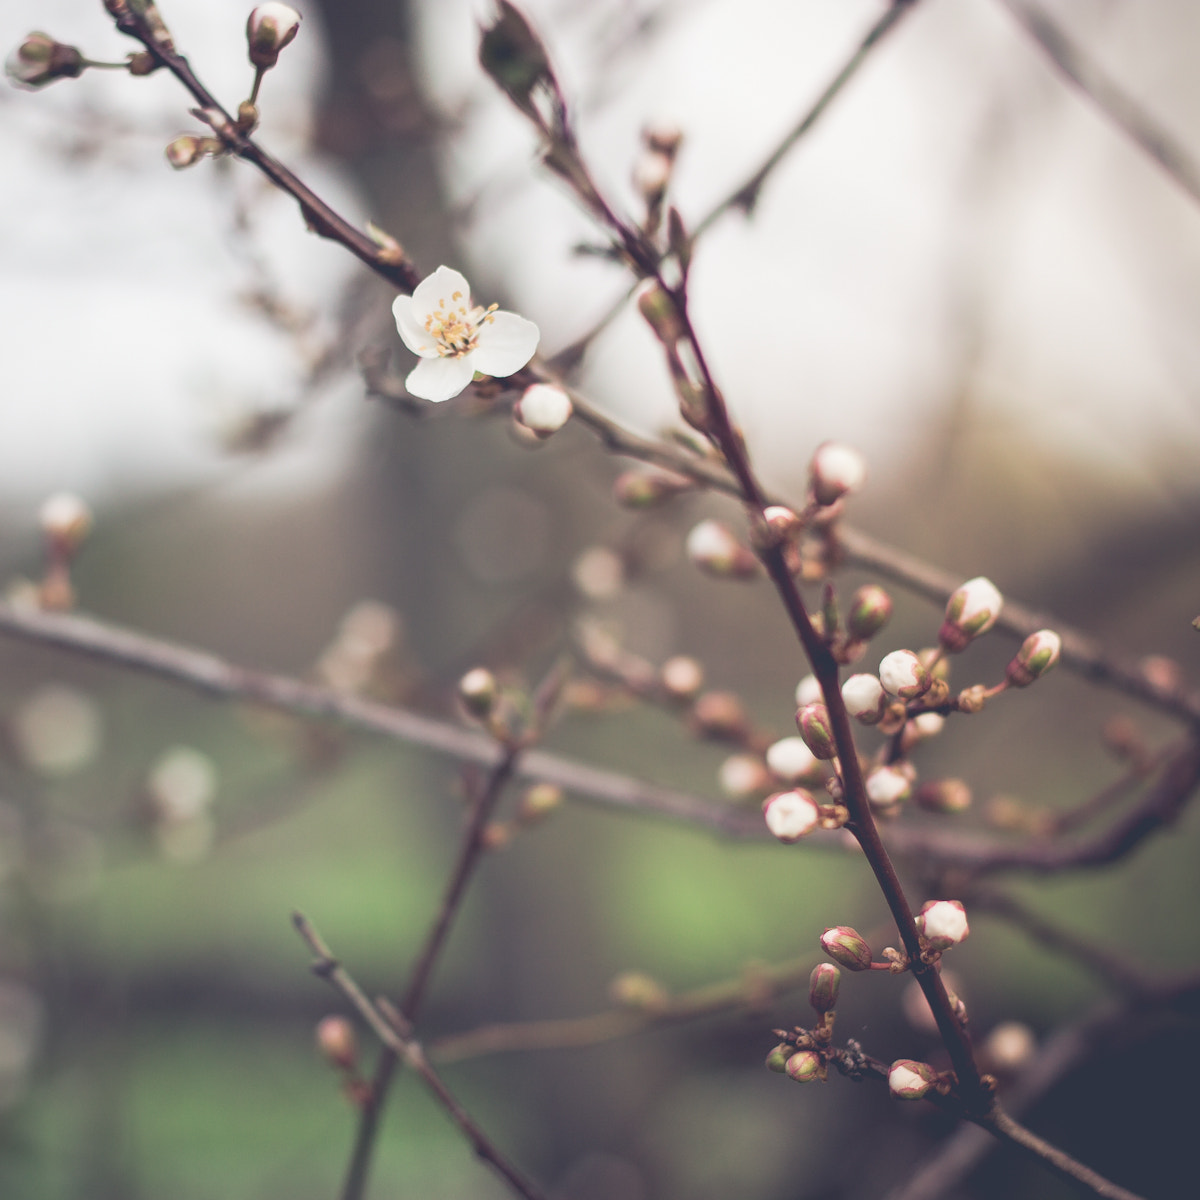 Photograph spring by Andrea Schunert on 500px